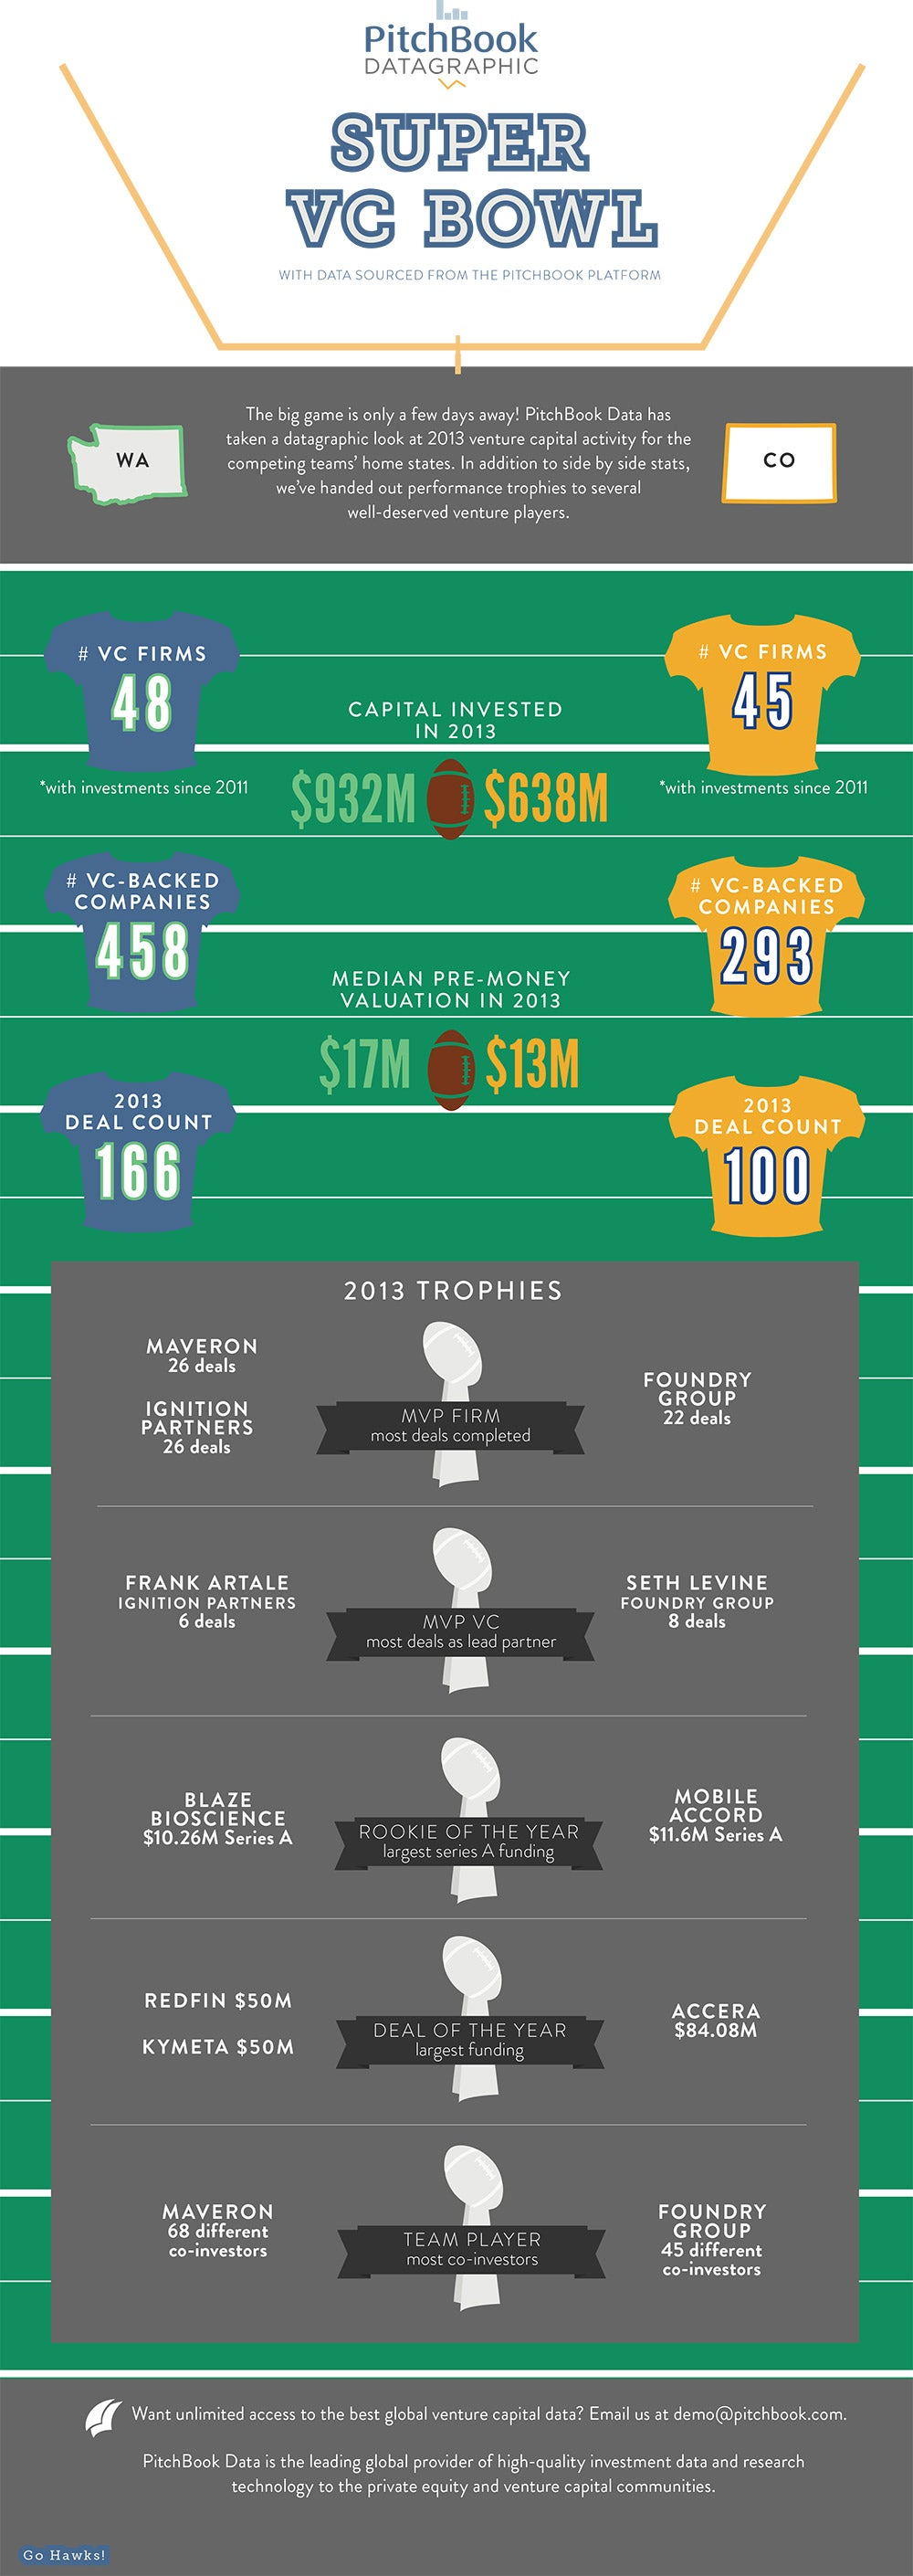 Who Would Win the VC Super Bowl: Washington or Colorado? (Infographic)